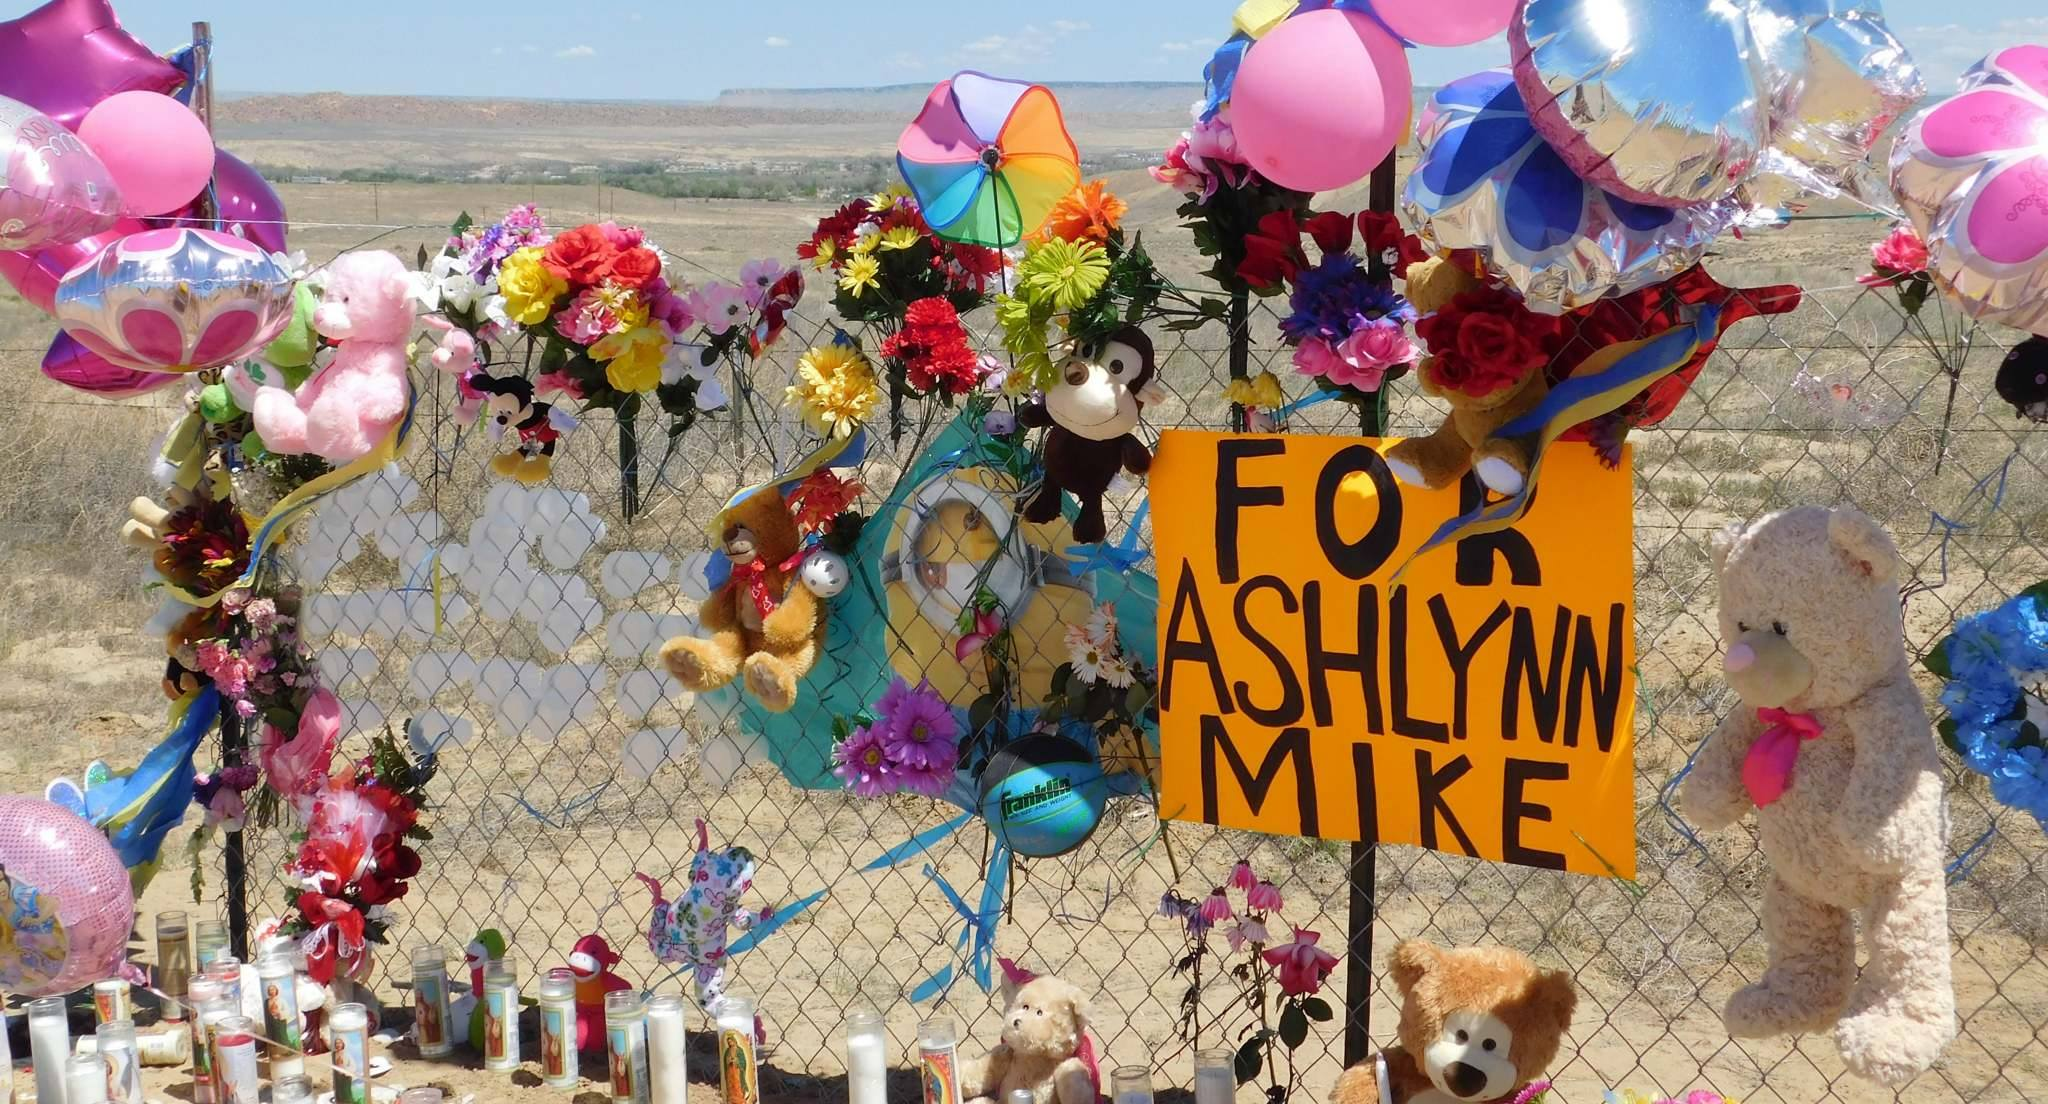 Leader of Navajo Nation Council criticizes coverage of girl's death